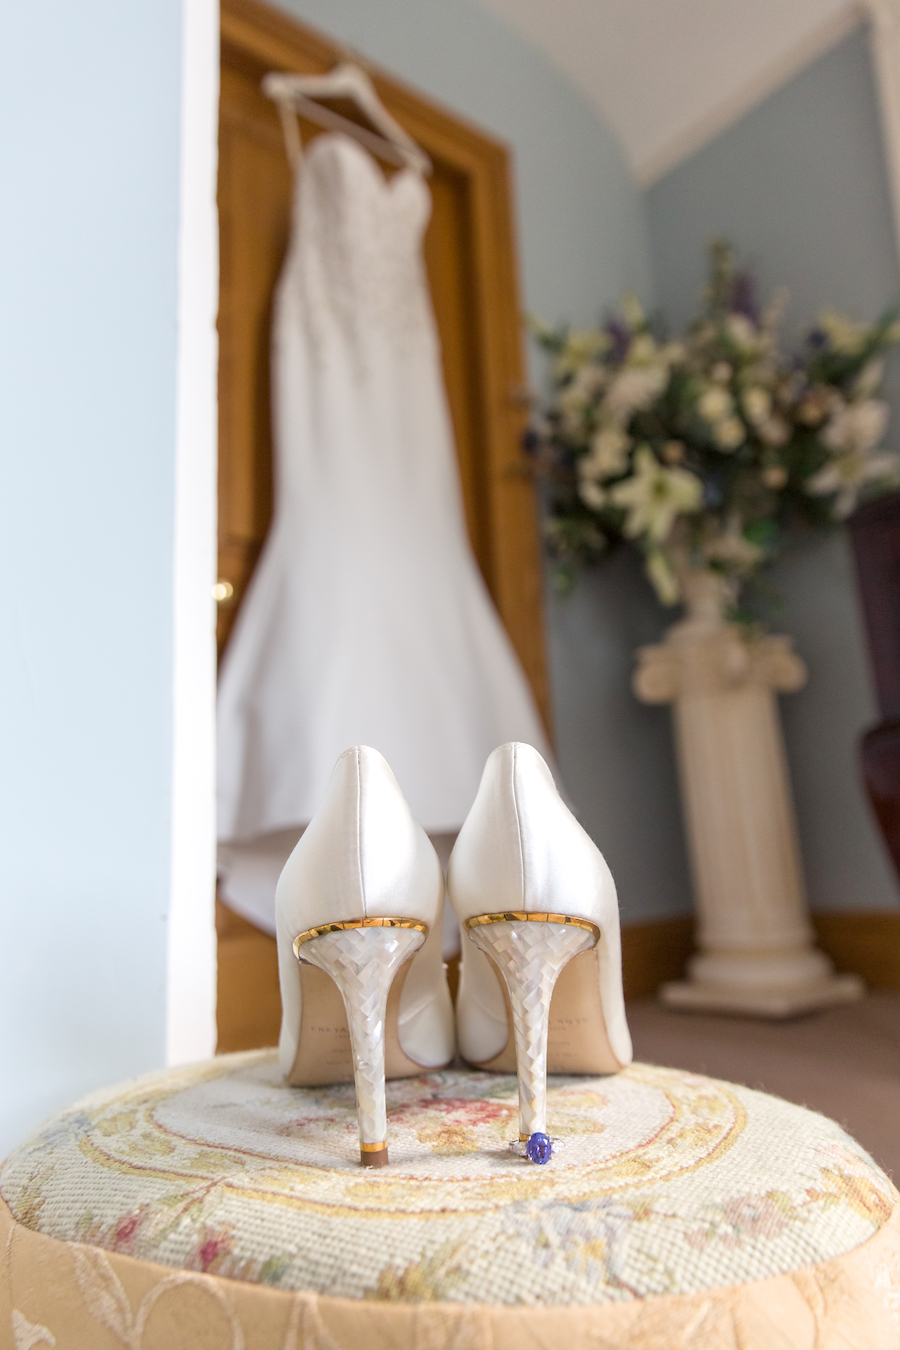 Real wedding by Ayshea Goldberg Photography at Layer Marney Tower (1)